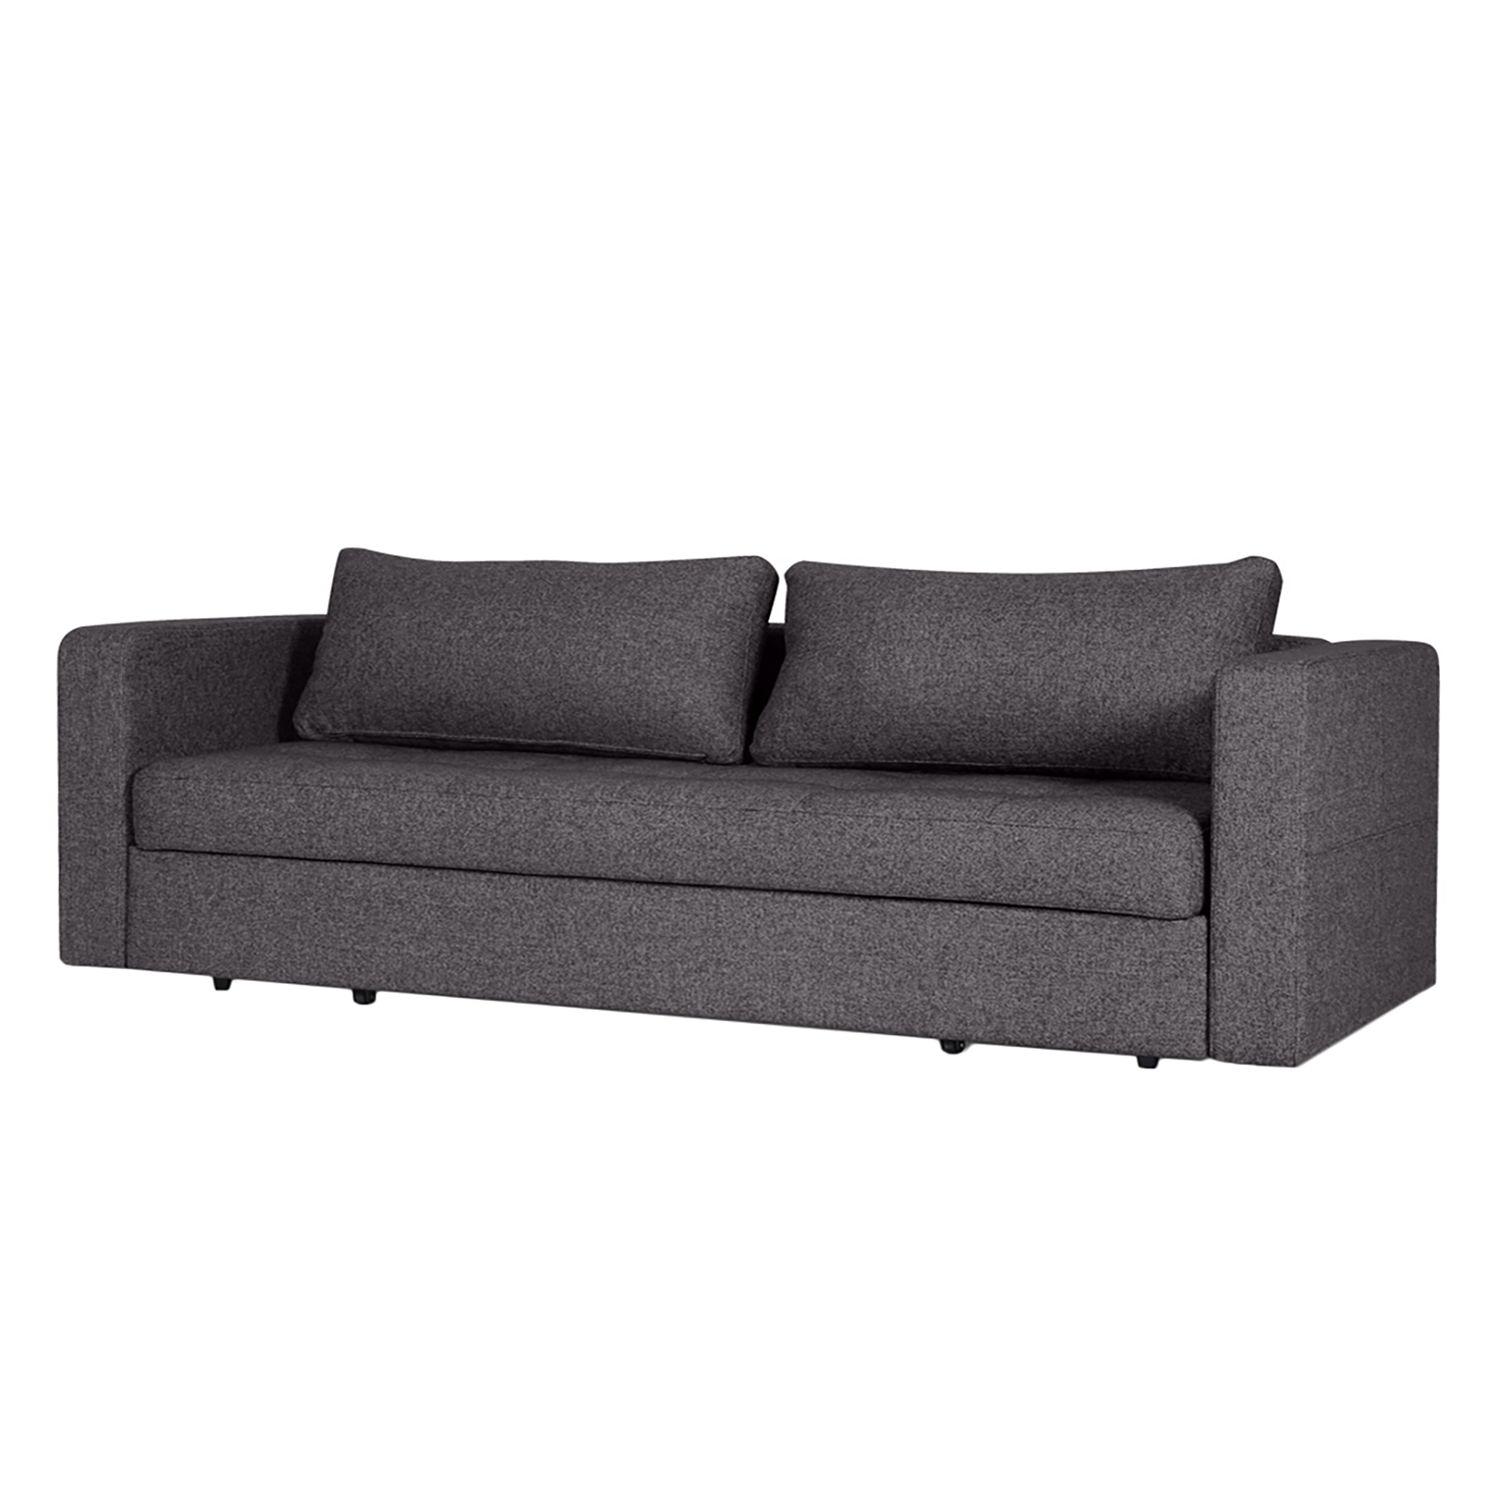 schlafsofa eperny webstoff stoff bora grau meliert aws velbert. Black Bedroom Furniture Sets. Home Design Ideas